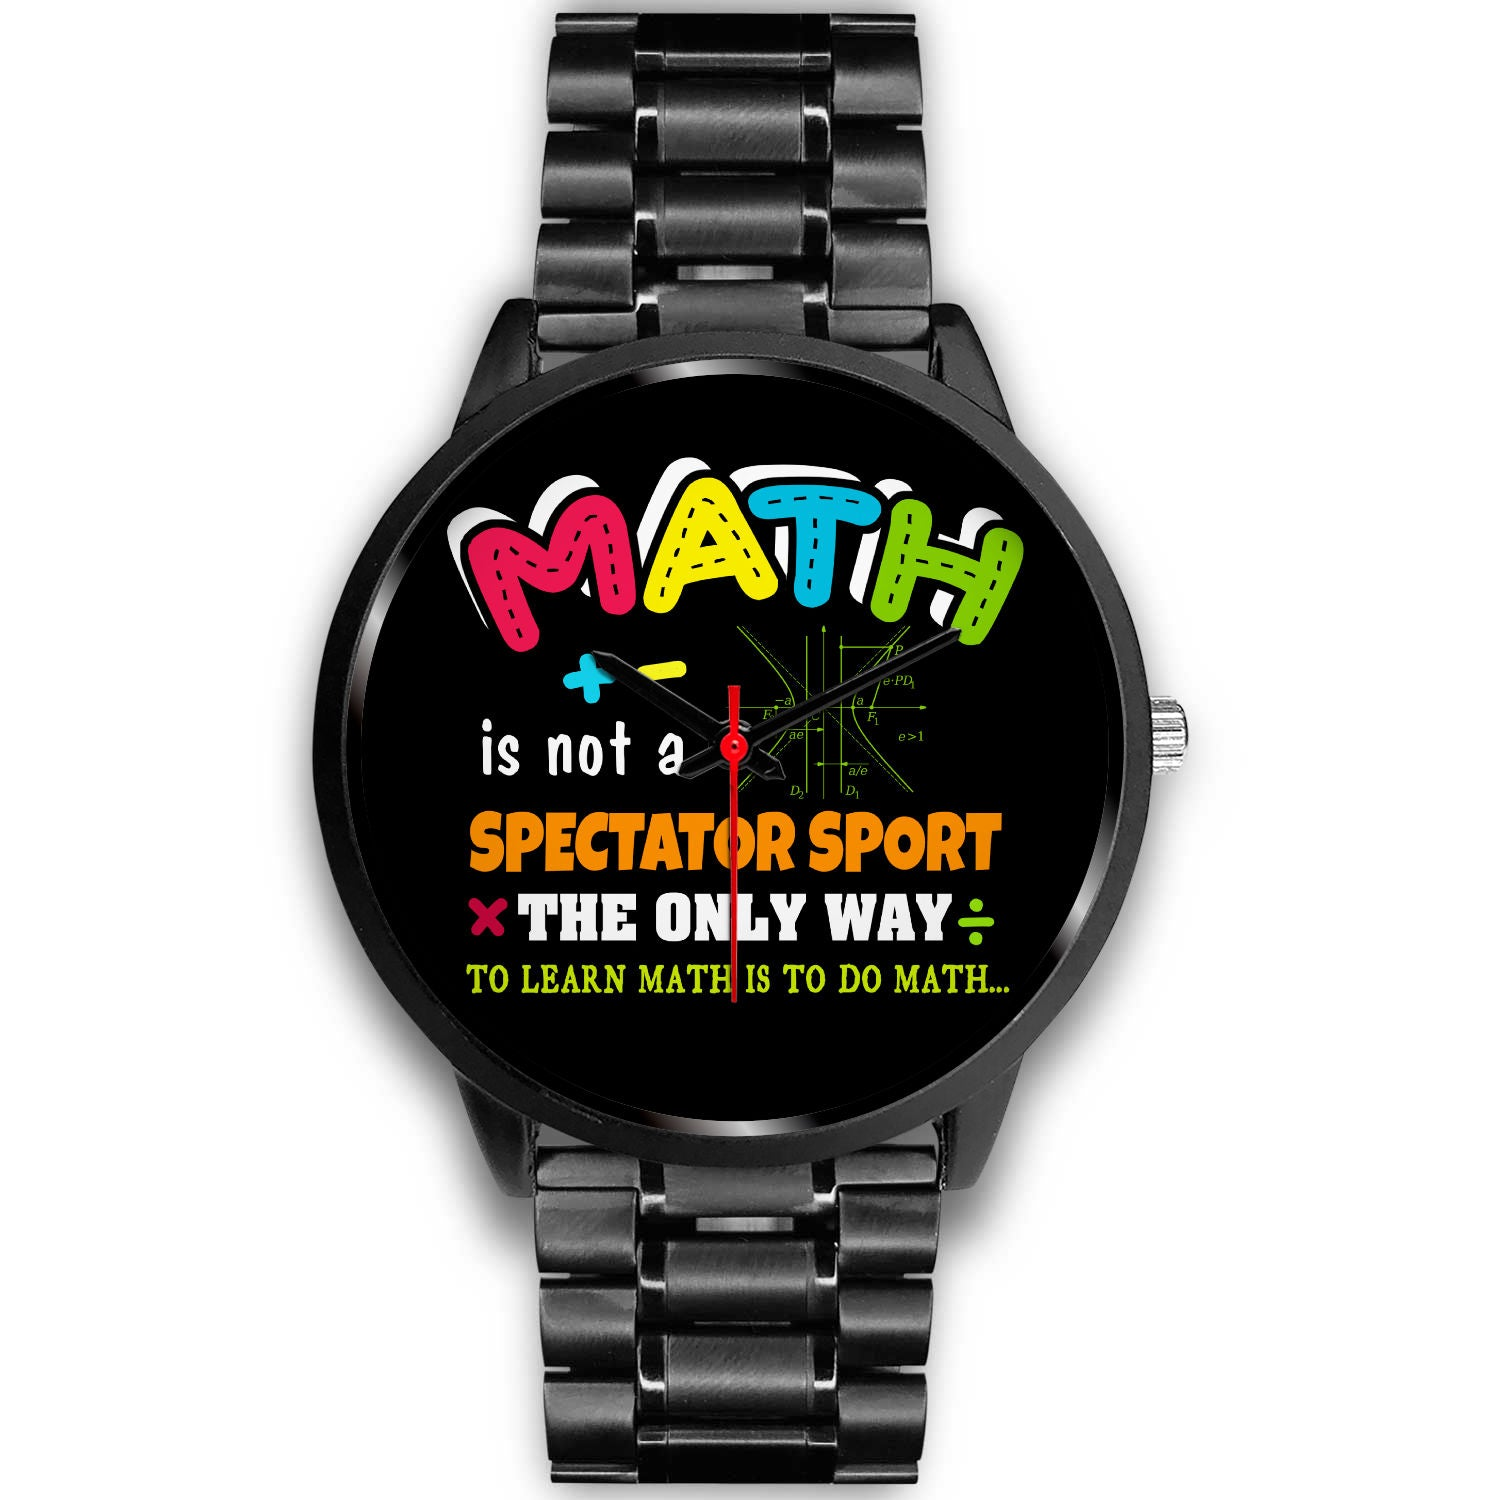 VIRA Math black stainless steel watch for awesome teachers